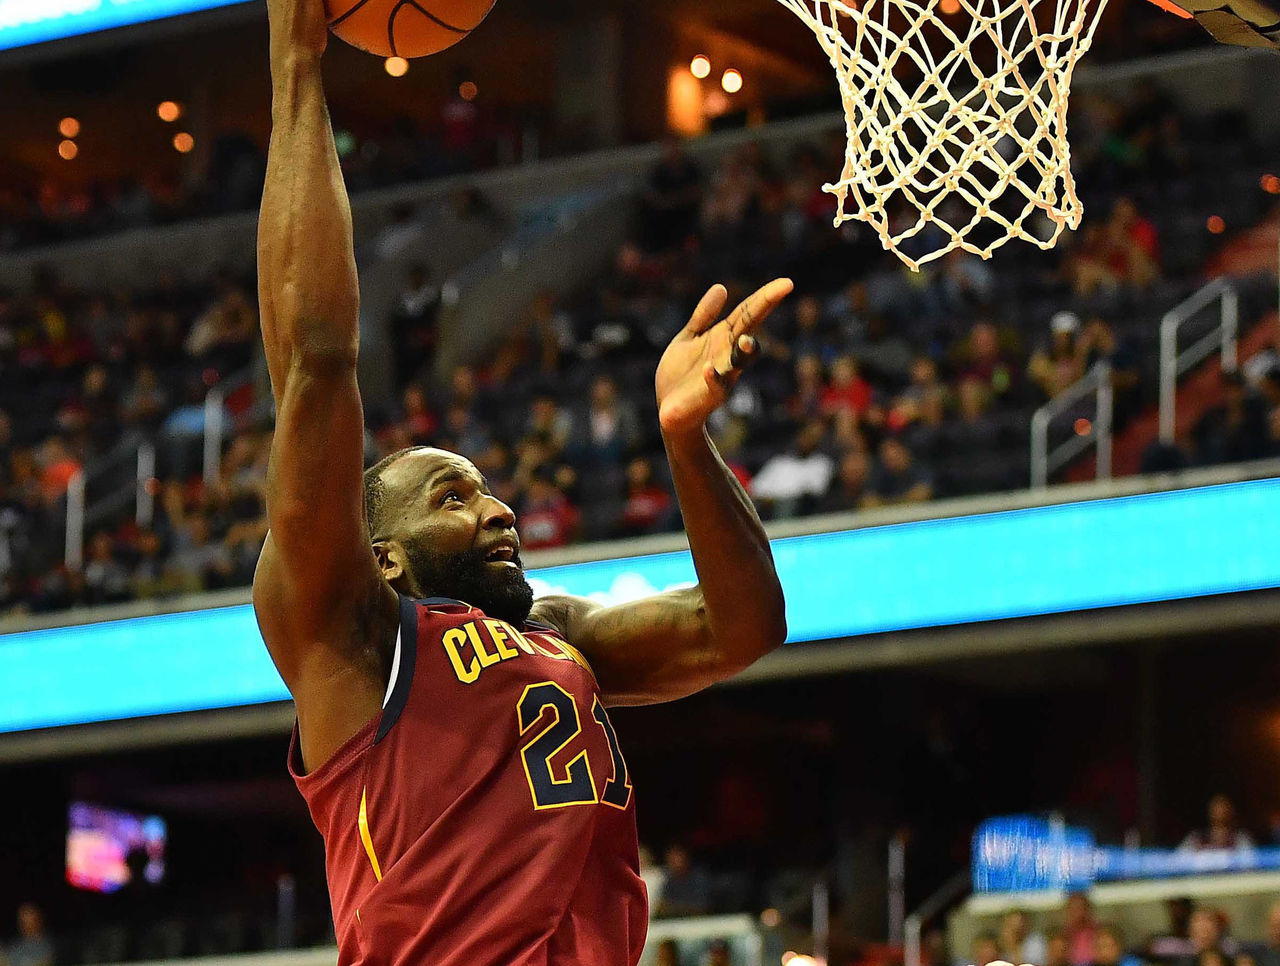 Cropped 2017 10 08t203008z 1832680280 nocid rtrmadp 3 nba preseason cleveland cavaliers at washington wizards